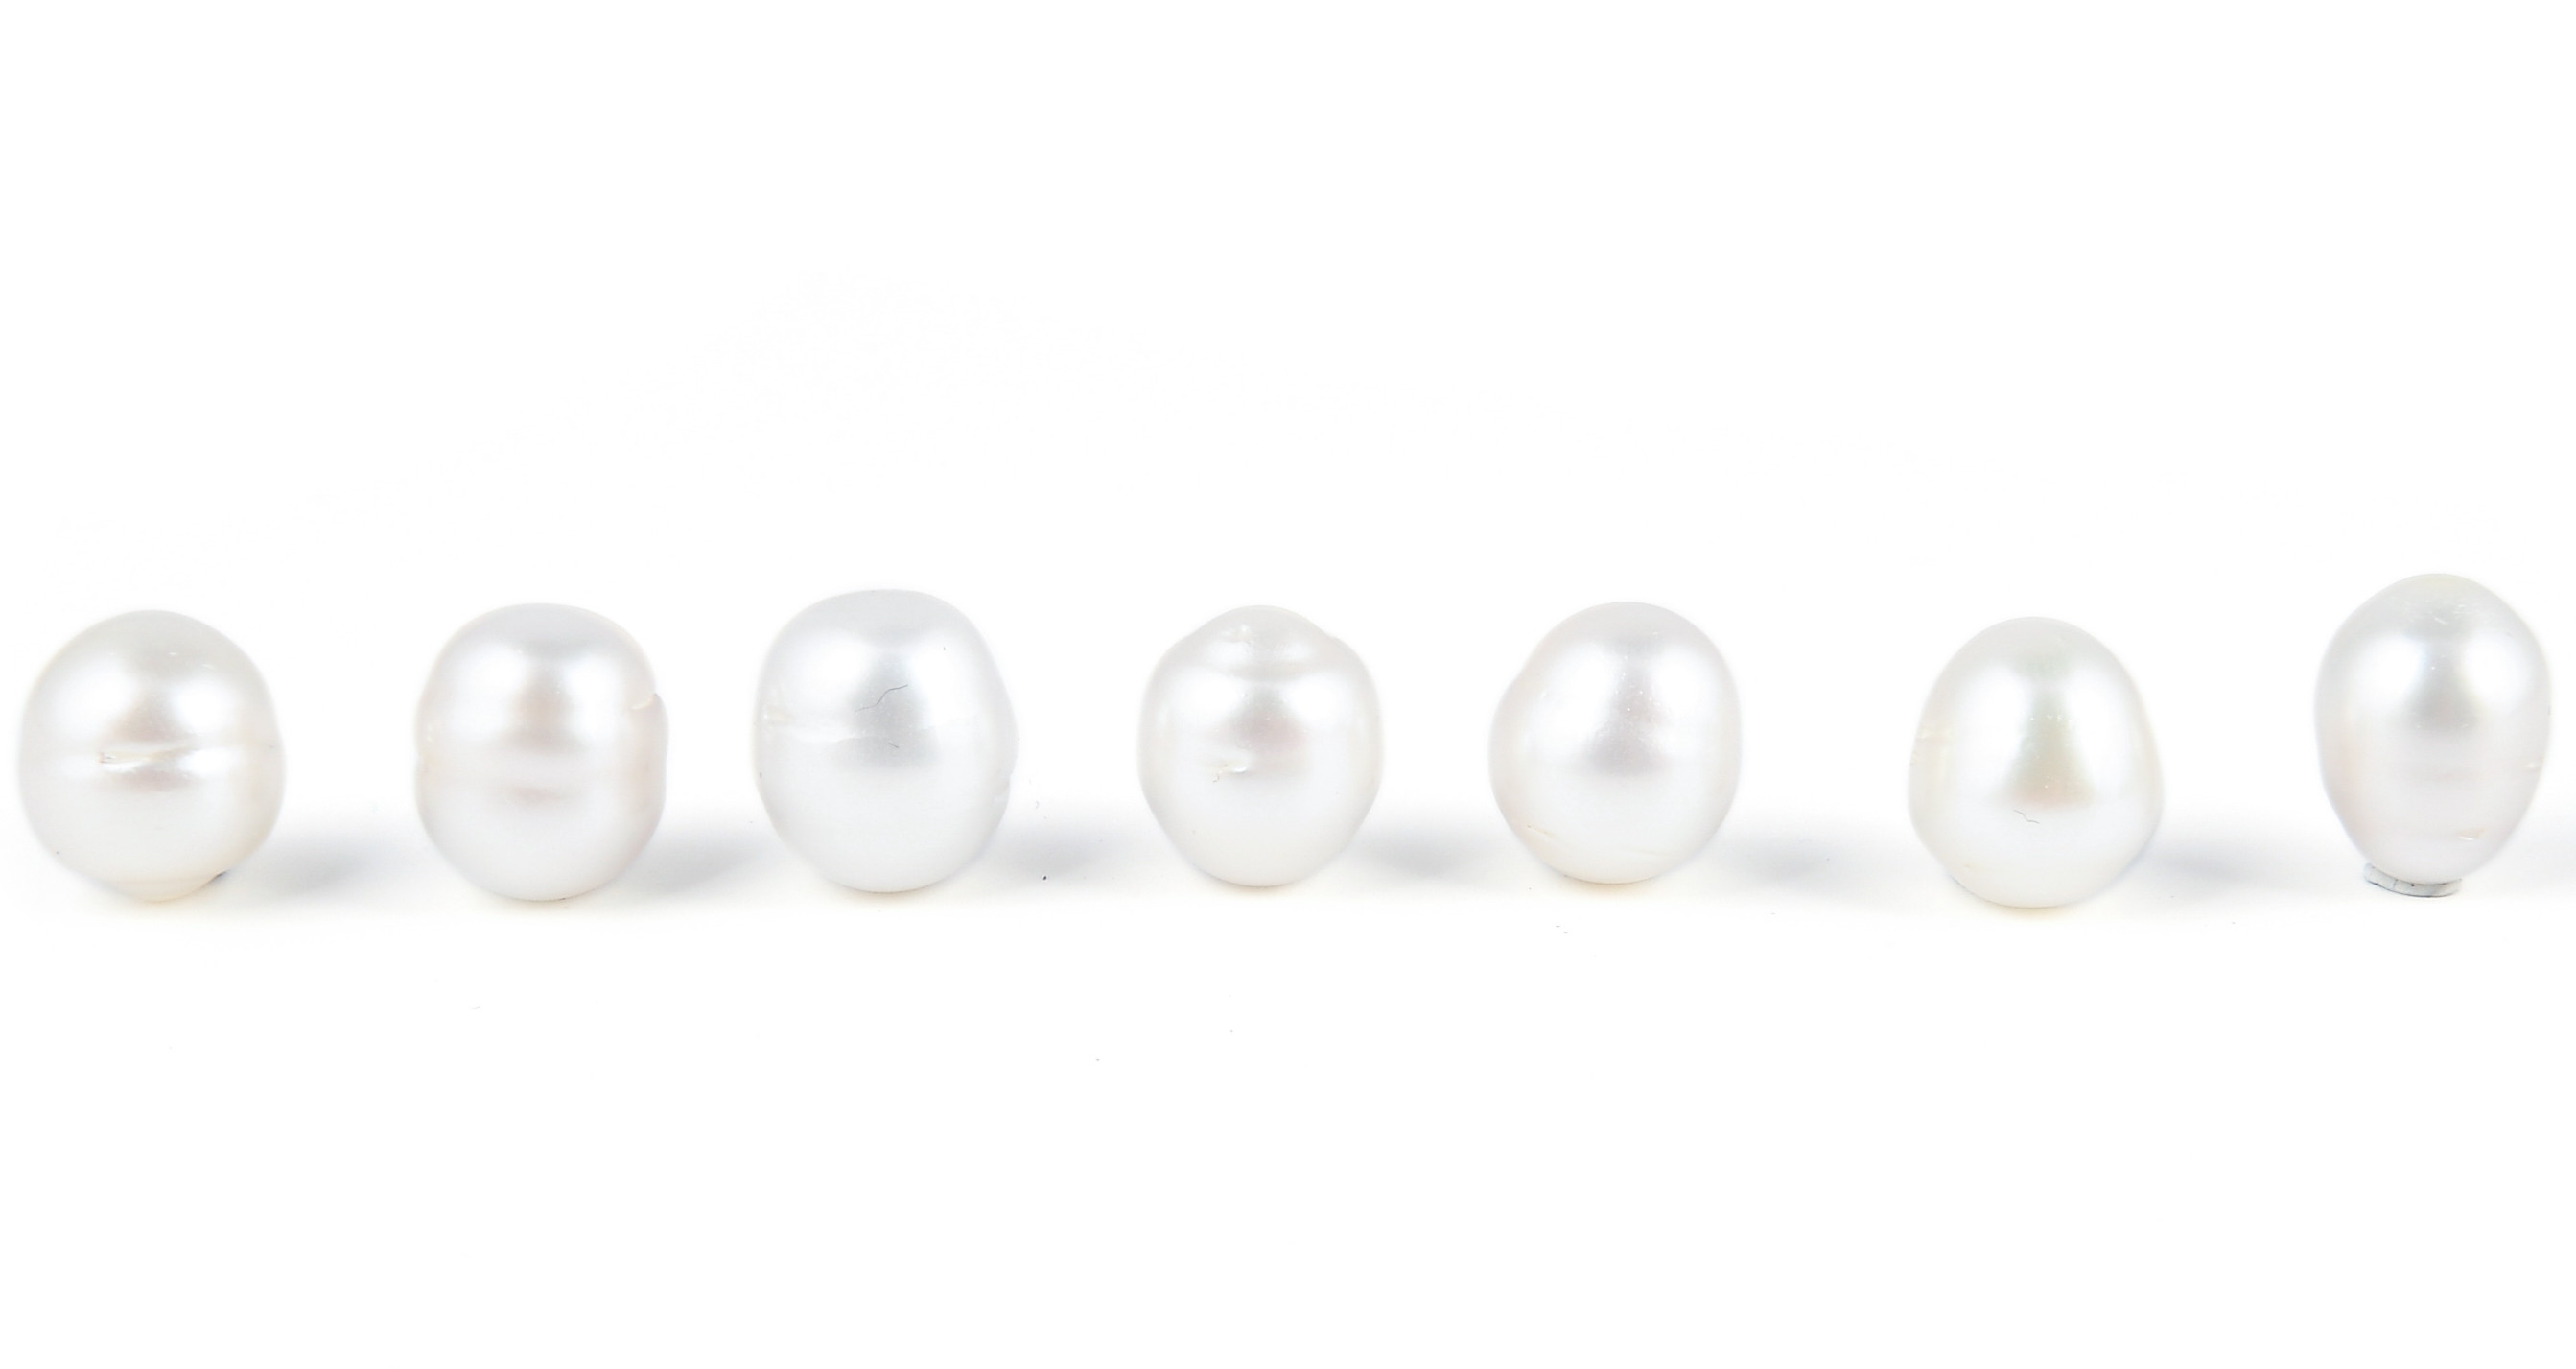 One piece of Undrilled Genuine White South Sea Baroque Irregular Shape Loose Pearl 11-14mm - ls356